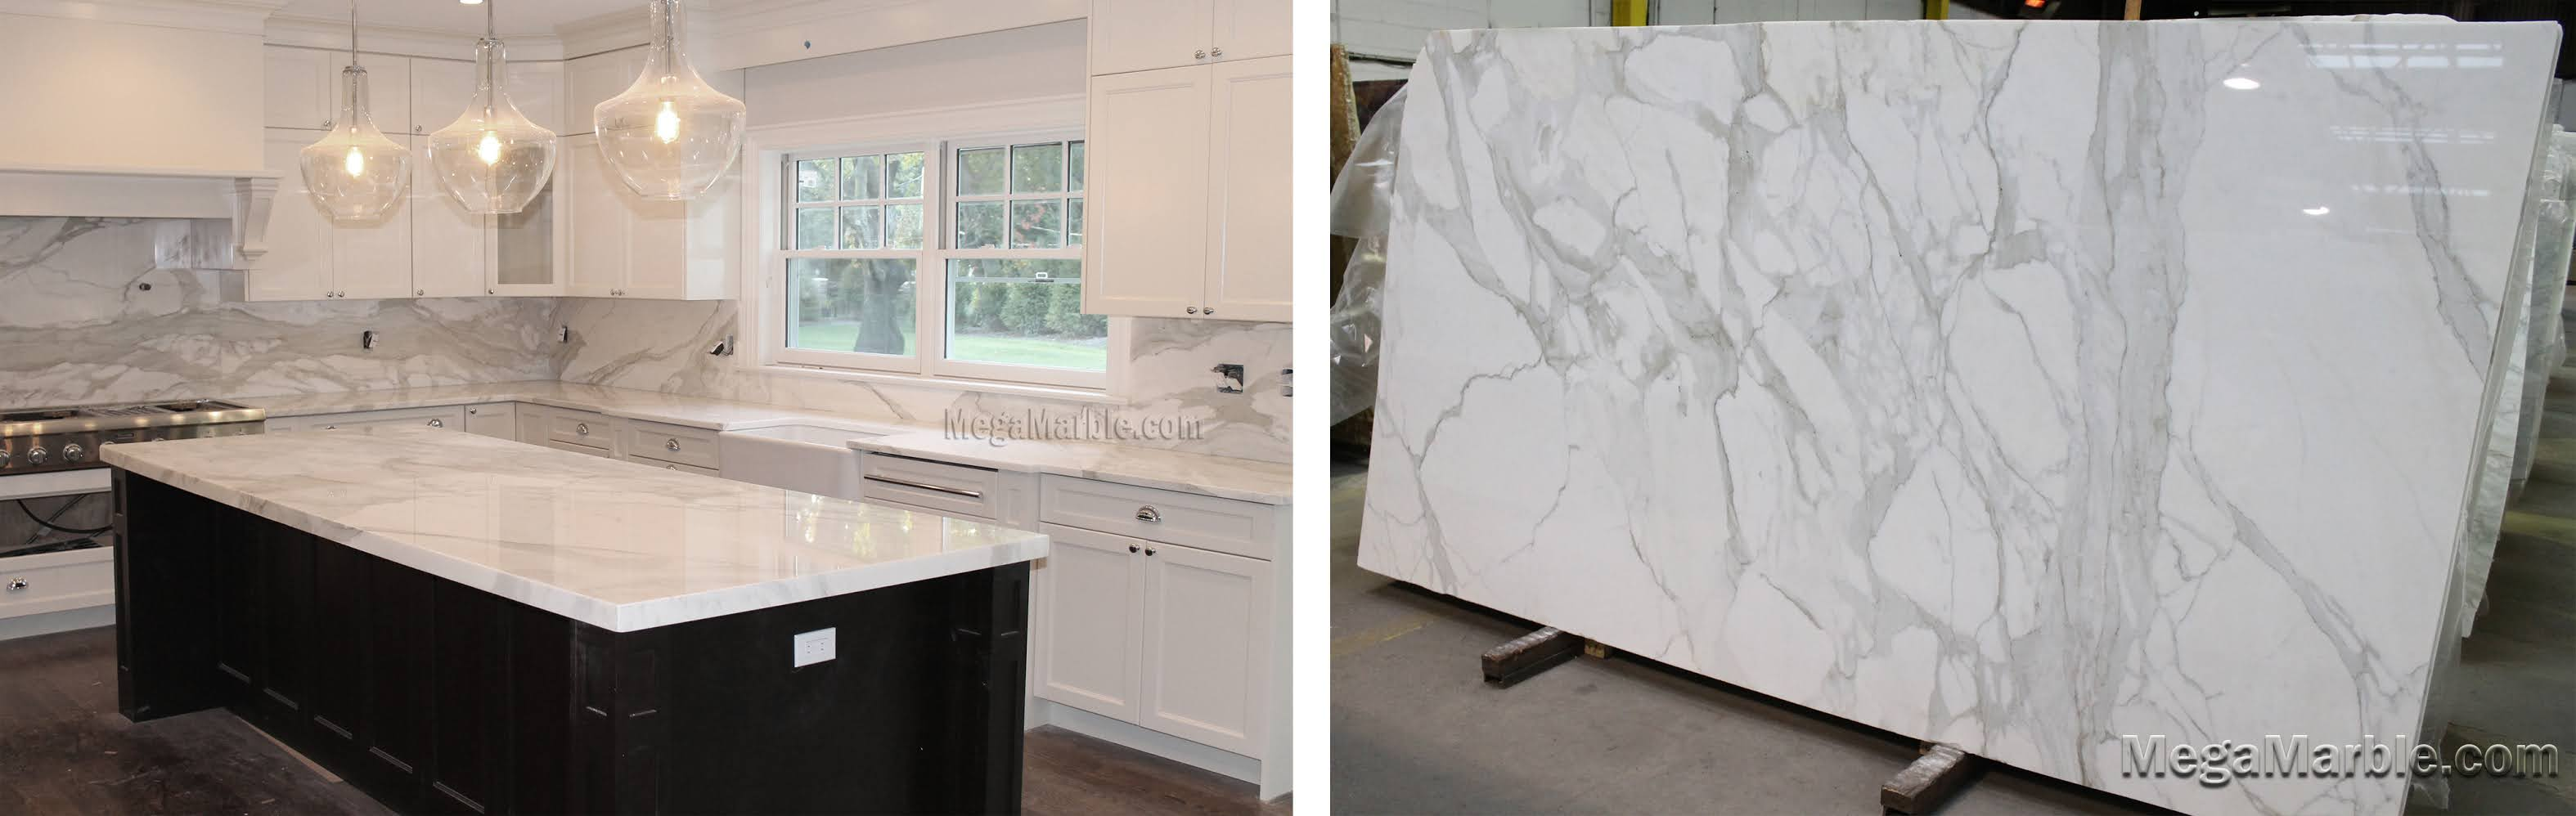 Calacatta Gold Marble Countertops Marble Slabs